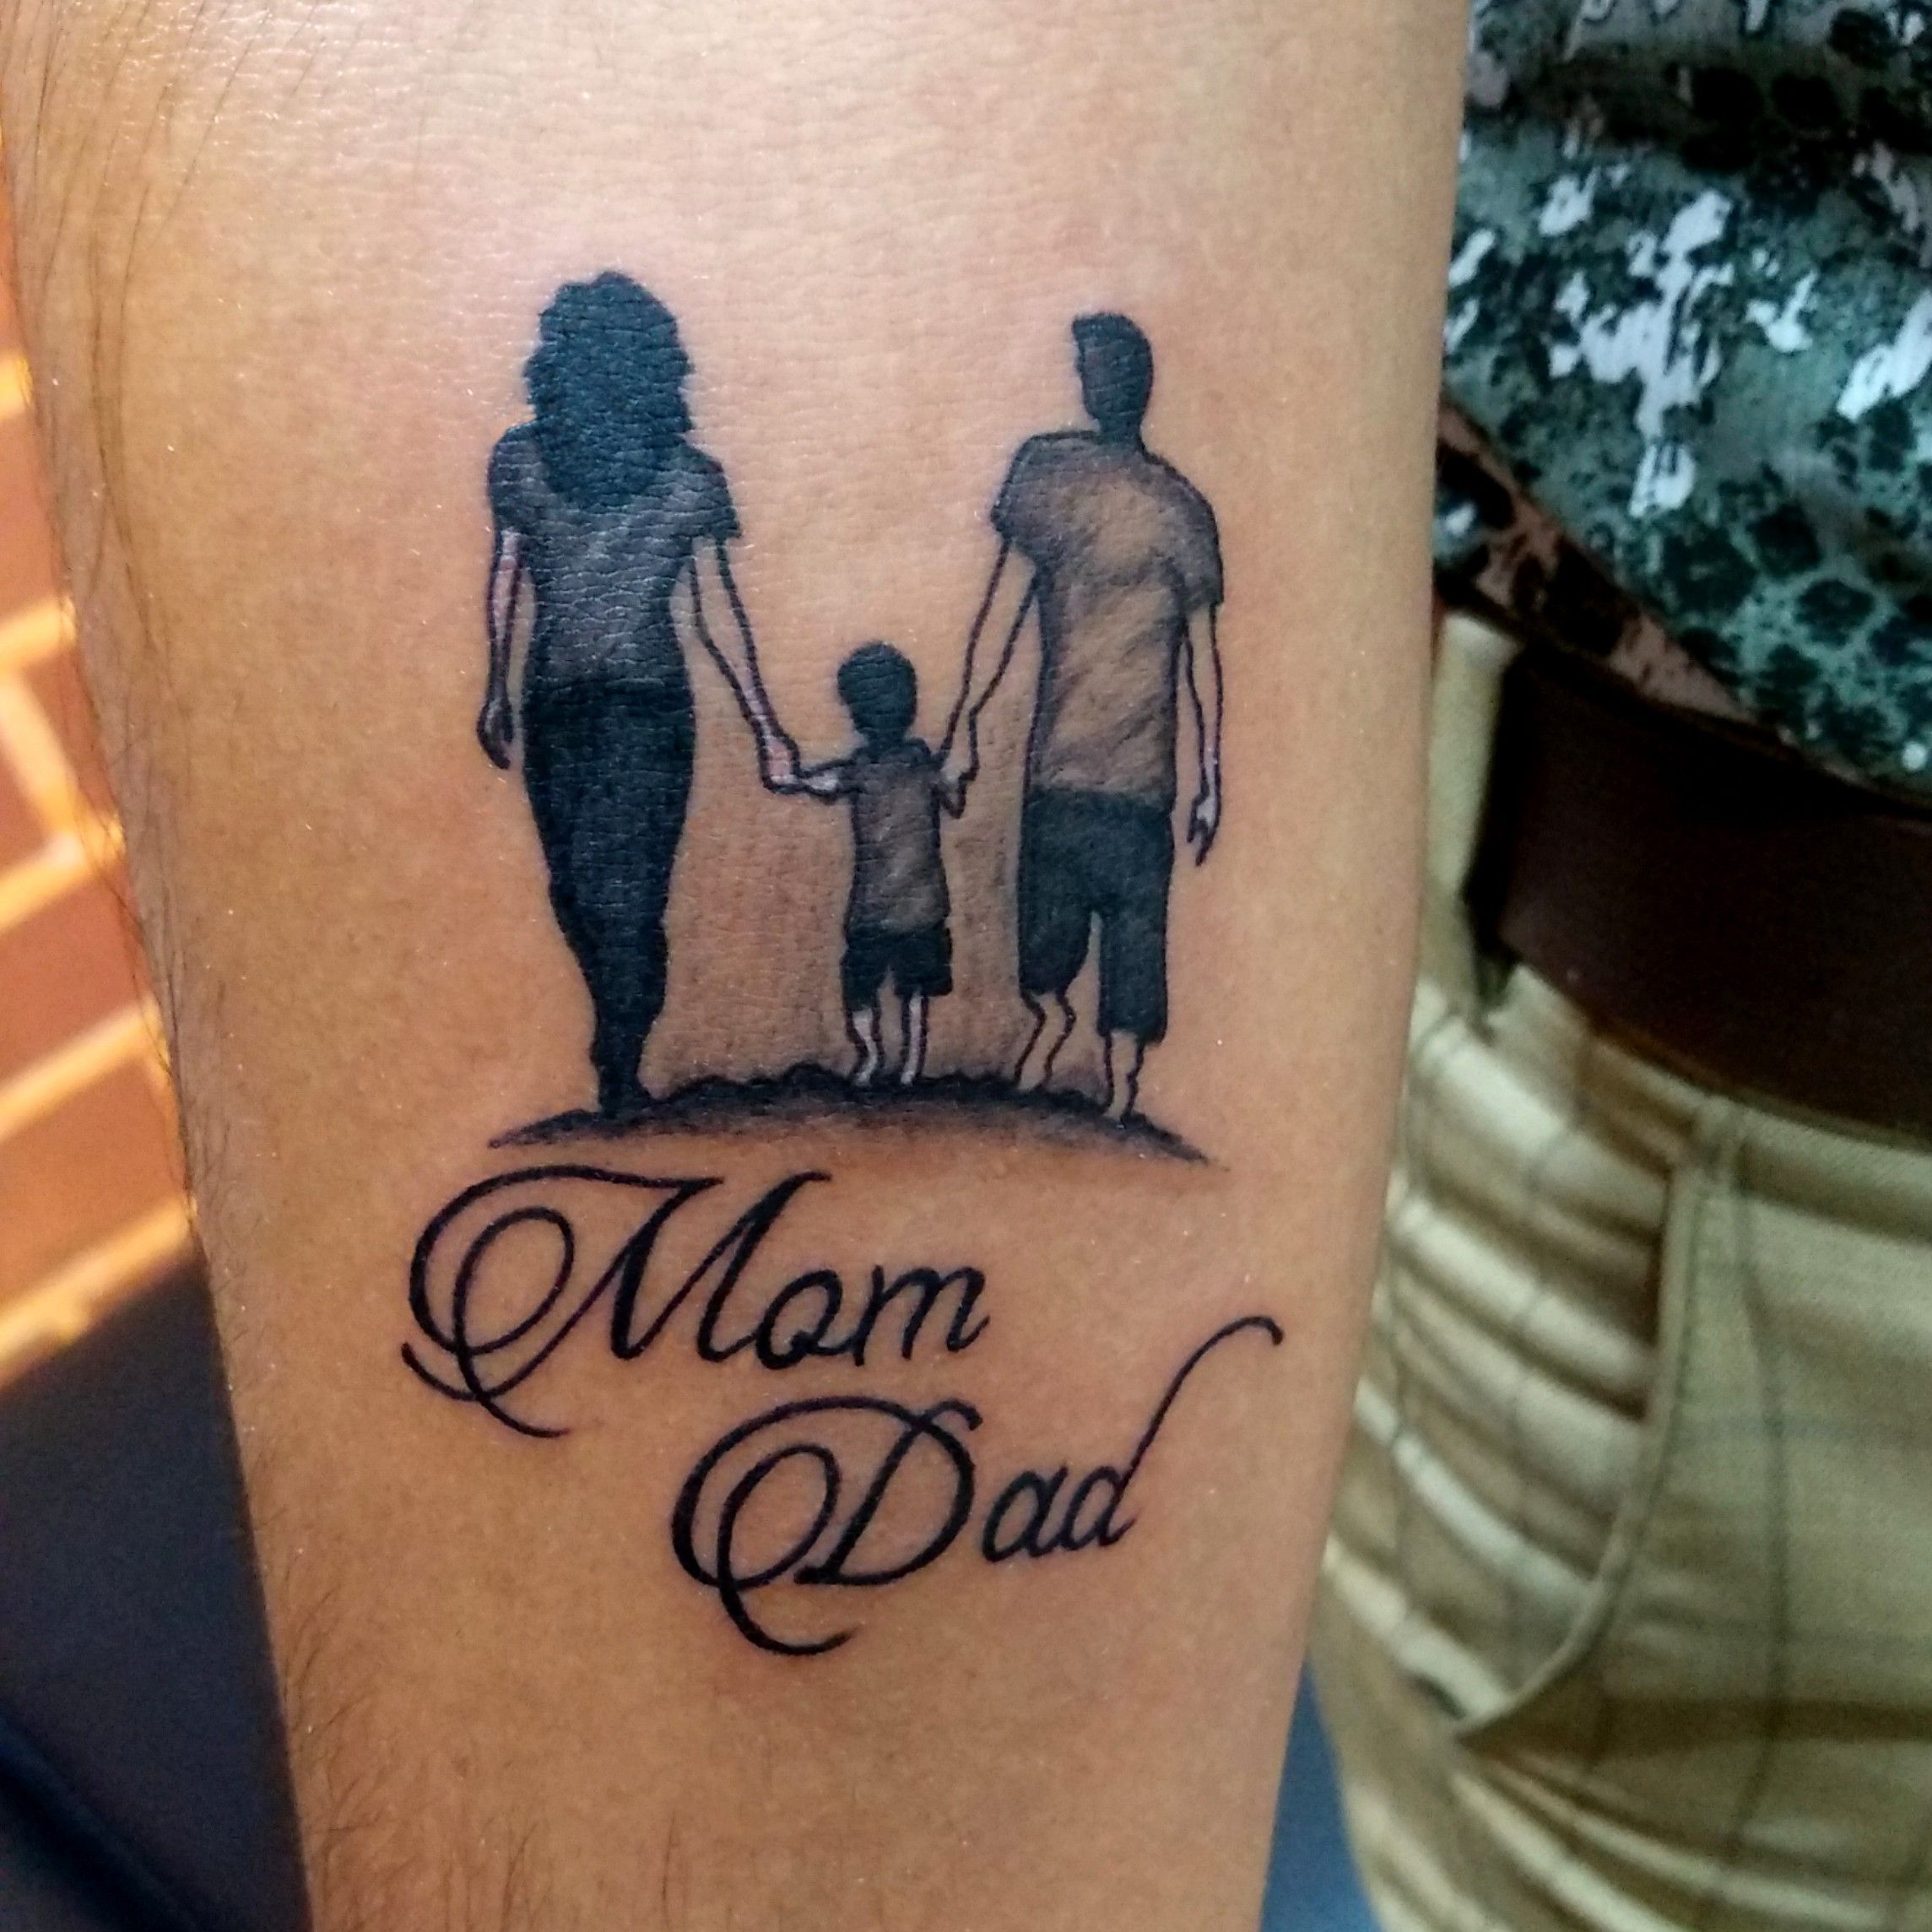 Mom Dad Tattoos Mom Dad Tattoo Designs Mom Dad Tattoos Dad Tattoos